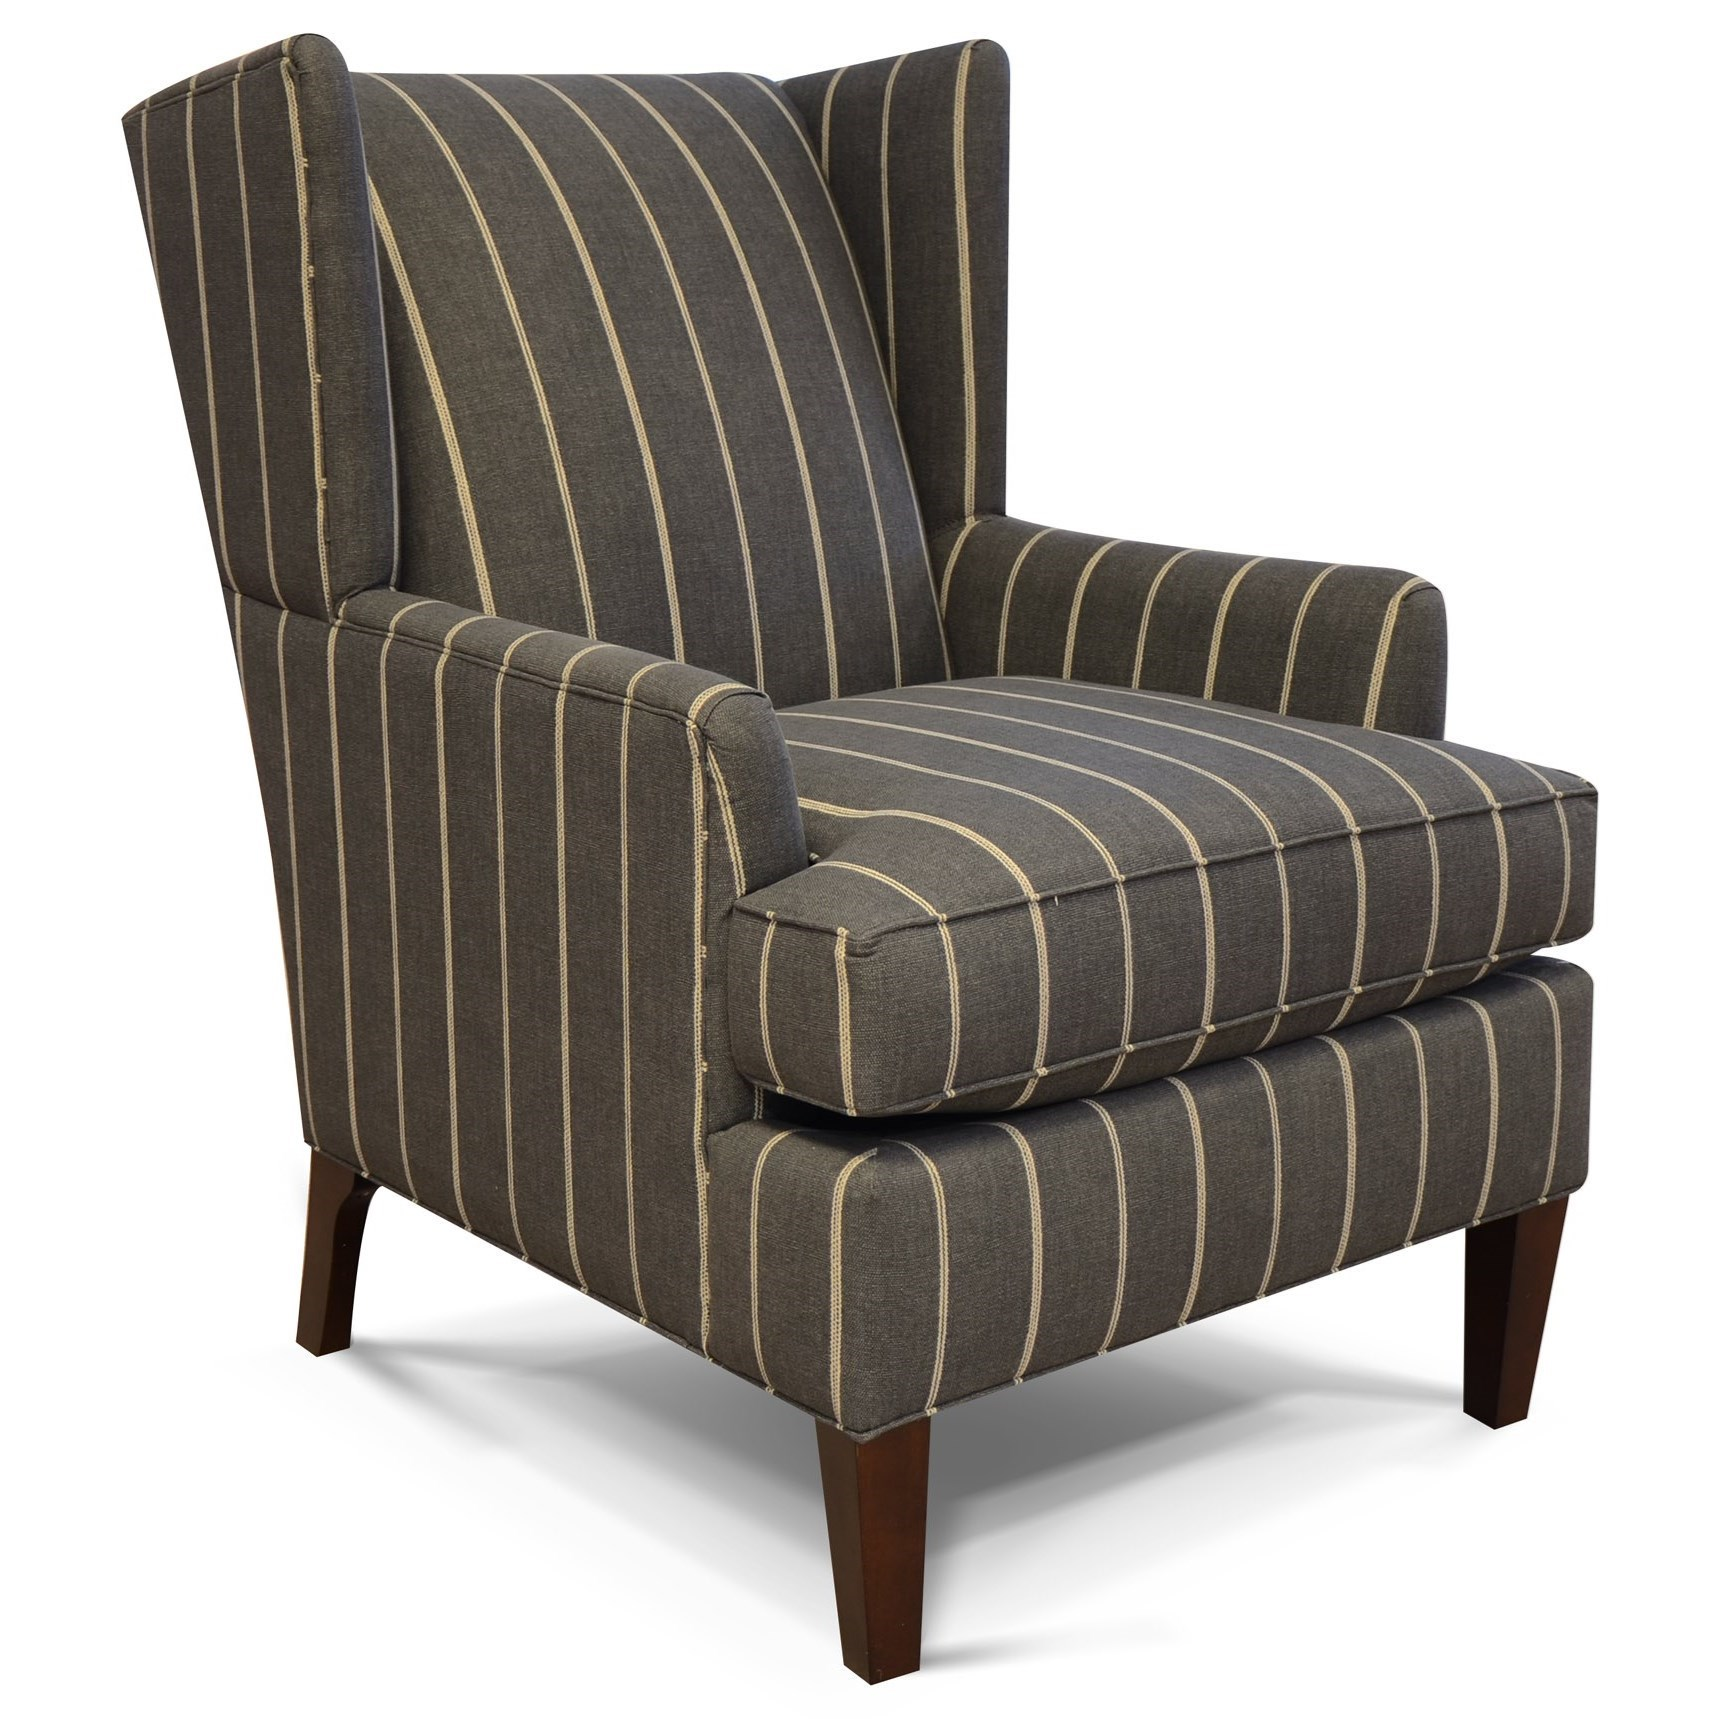 Shipley Wing Back Arm Chair by England at Pilgrim Furniture City